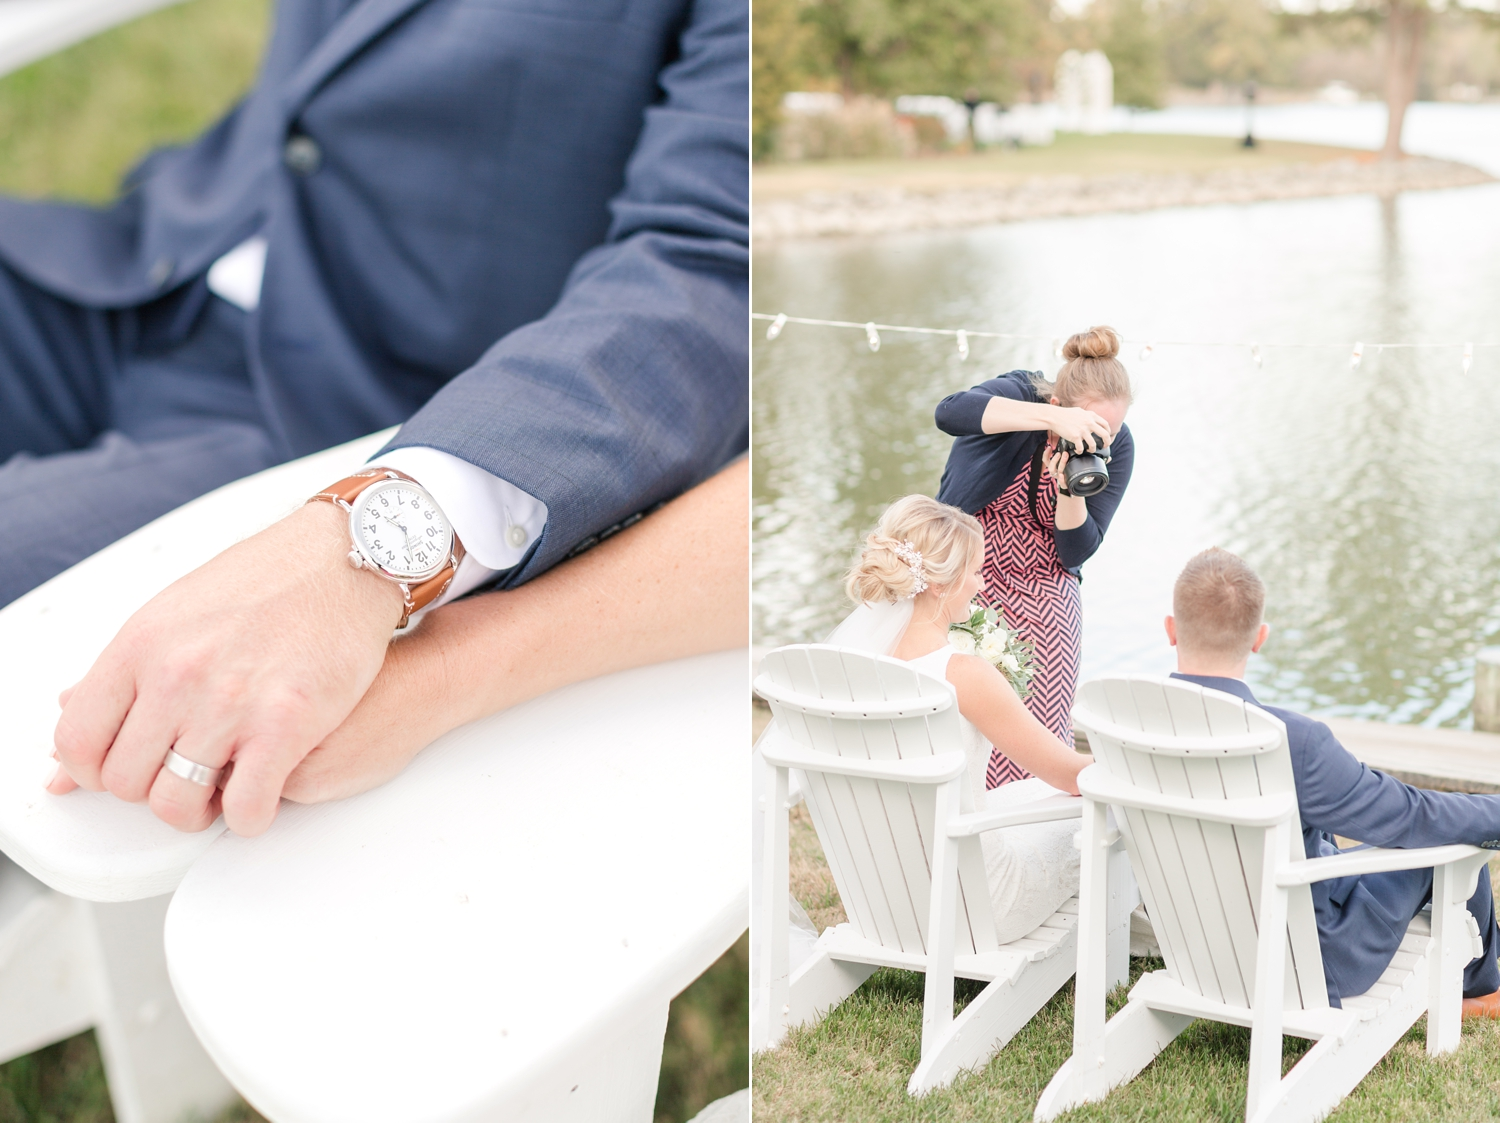 Kristine gave Joe this watch as a wedding present! Love the little details.